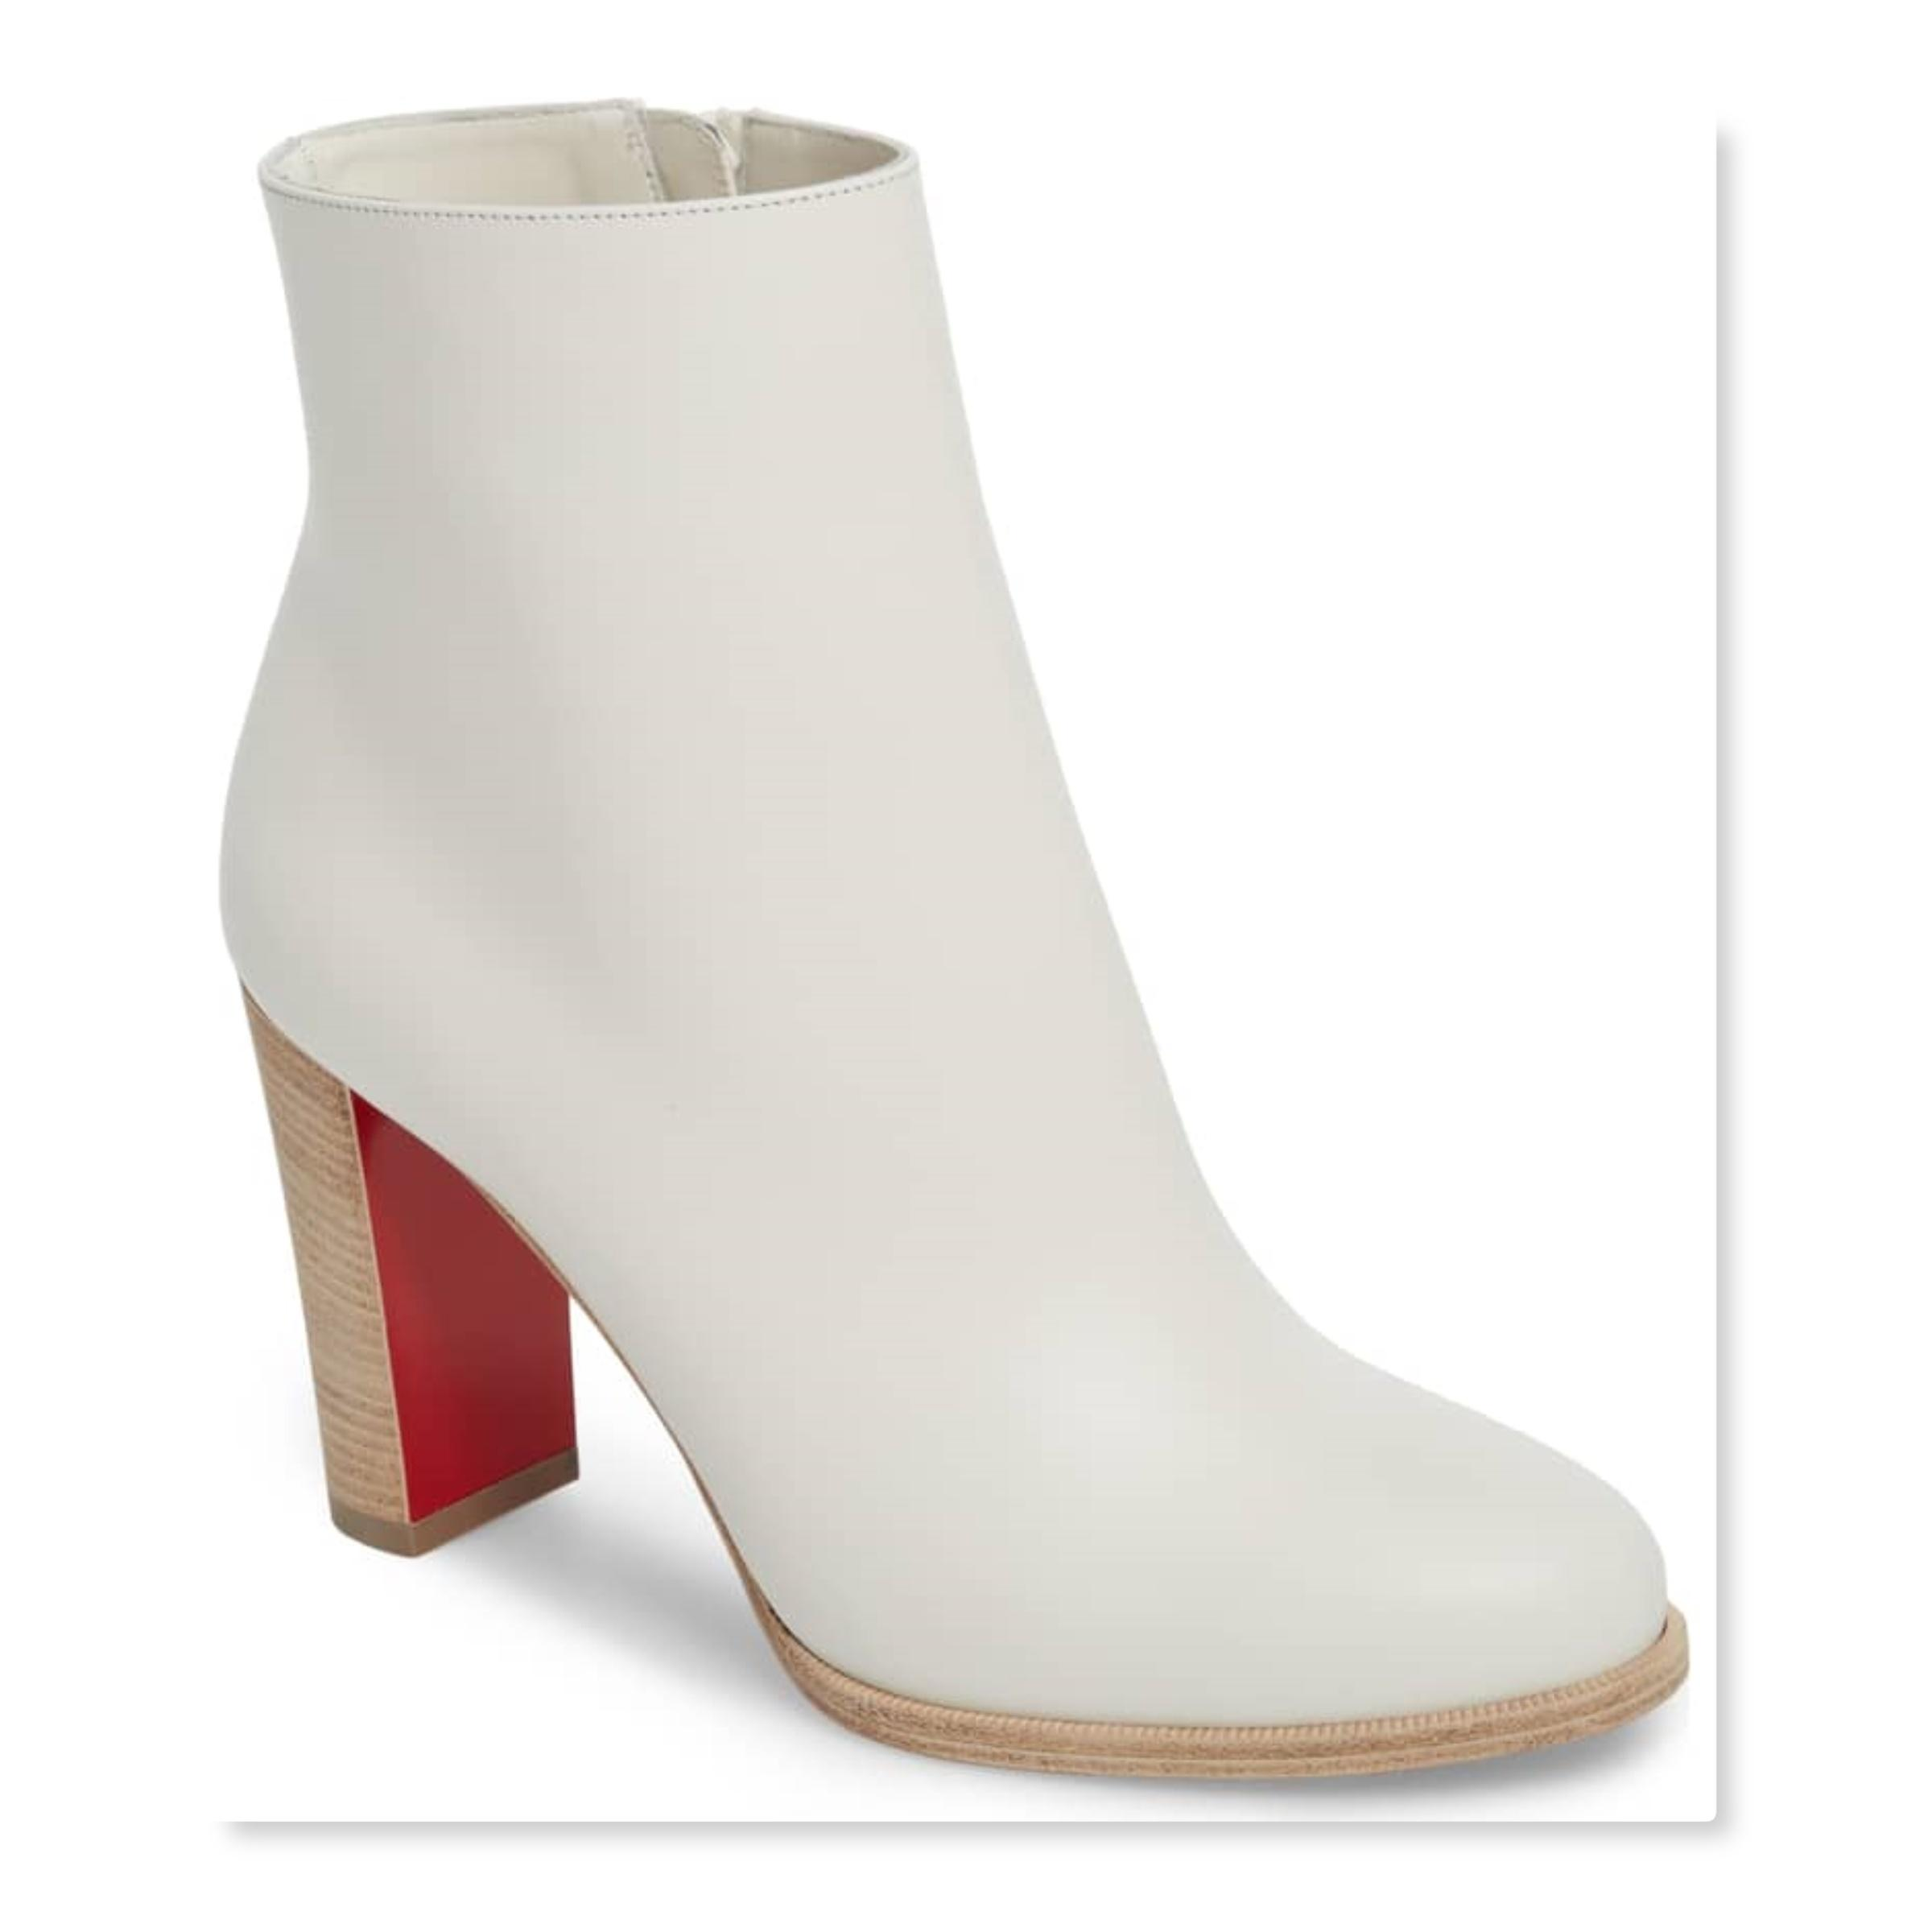 Christian Louboutin Latte/White Leather Block Heel Ankle Boots/Booties Size EU 37 (Approx. US 7) Regular (M, B)